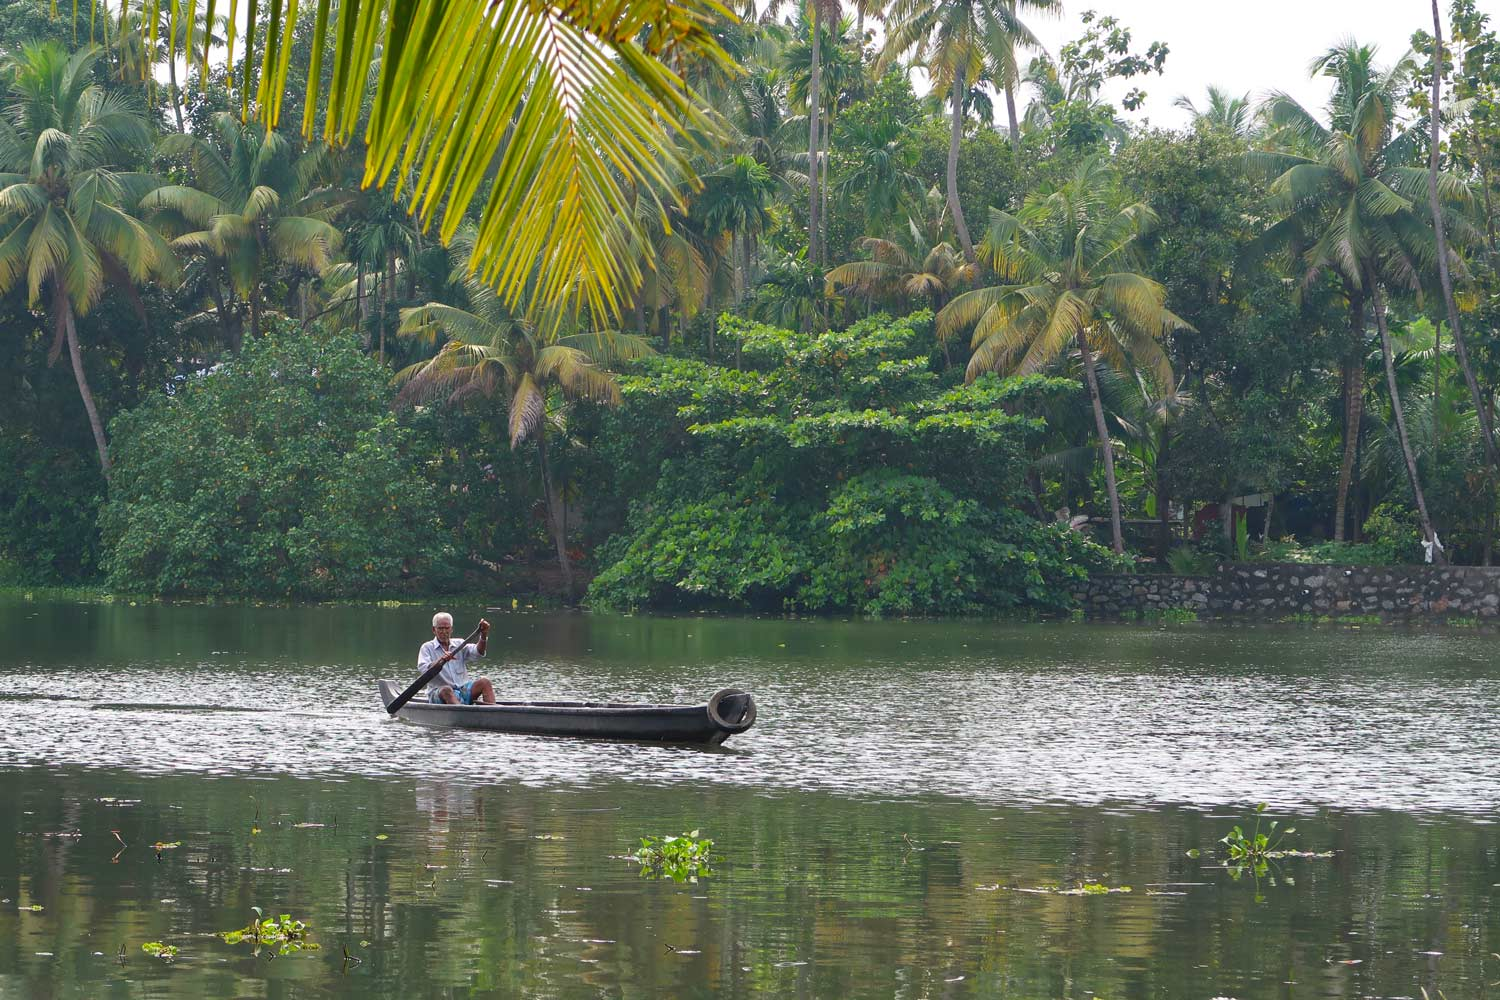 Backwaters Tour in Kerala - Holzboot im Wasser - likeontravel